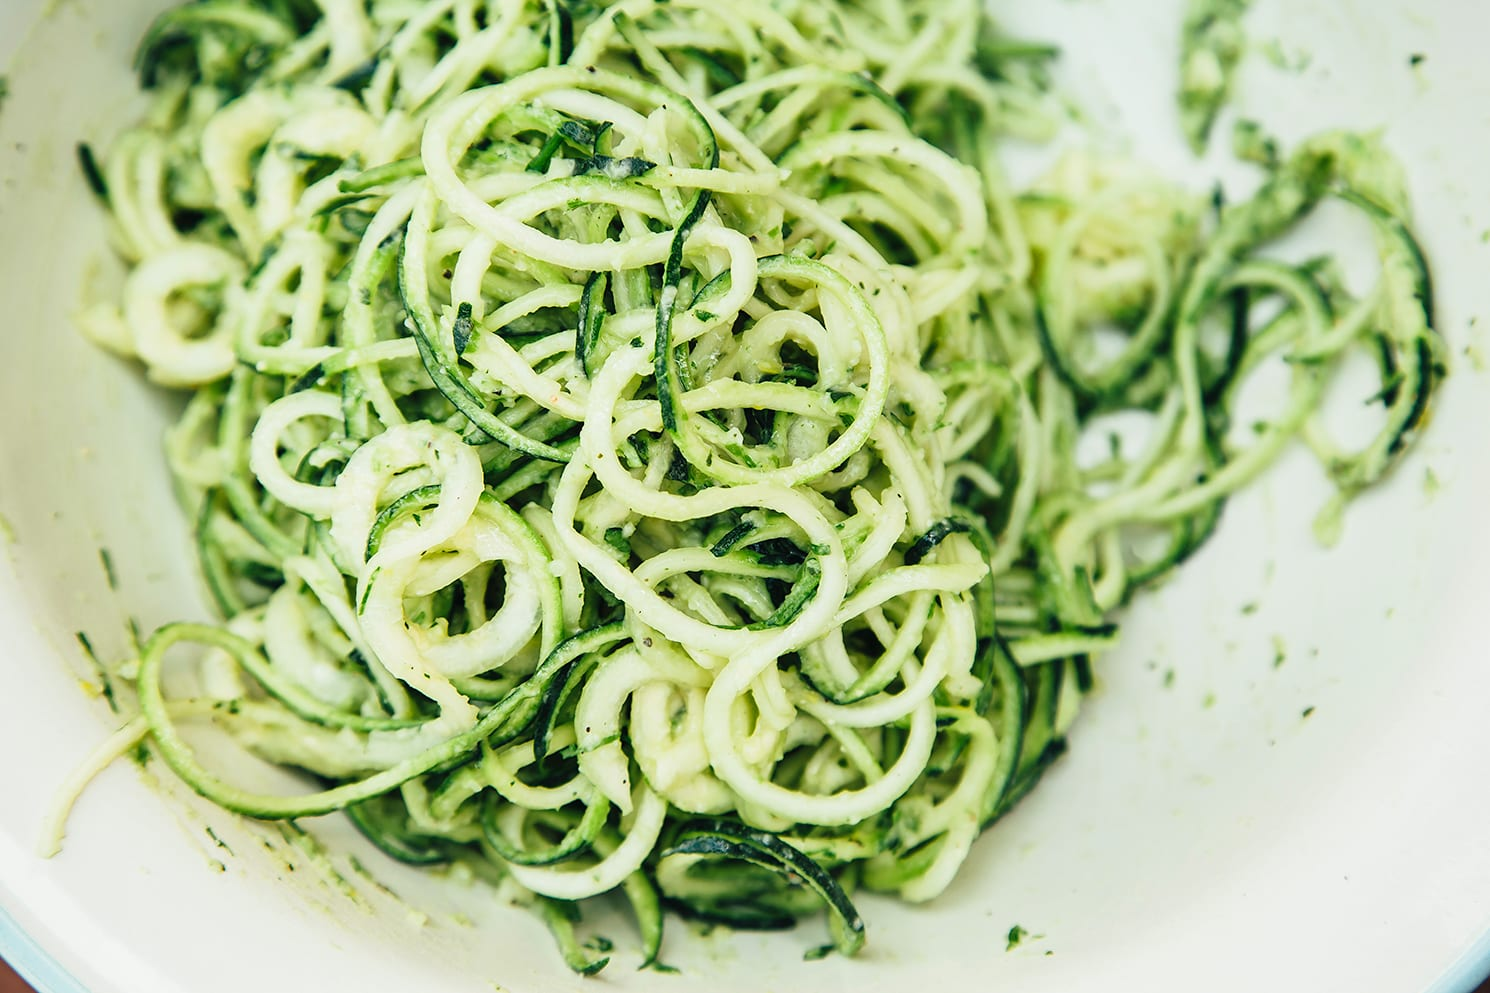 for Creamy Zucchini Noodles with Spring Onion Miso Sauce & Cheesy Sunflower Sprinkle - The First Mess